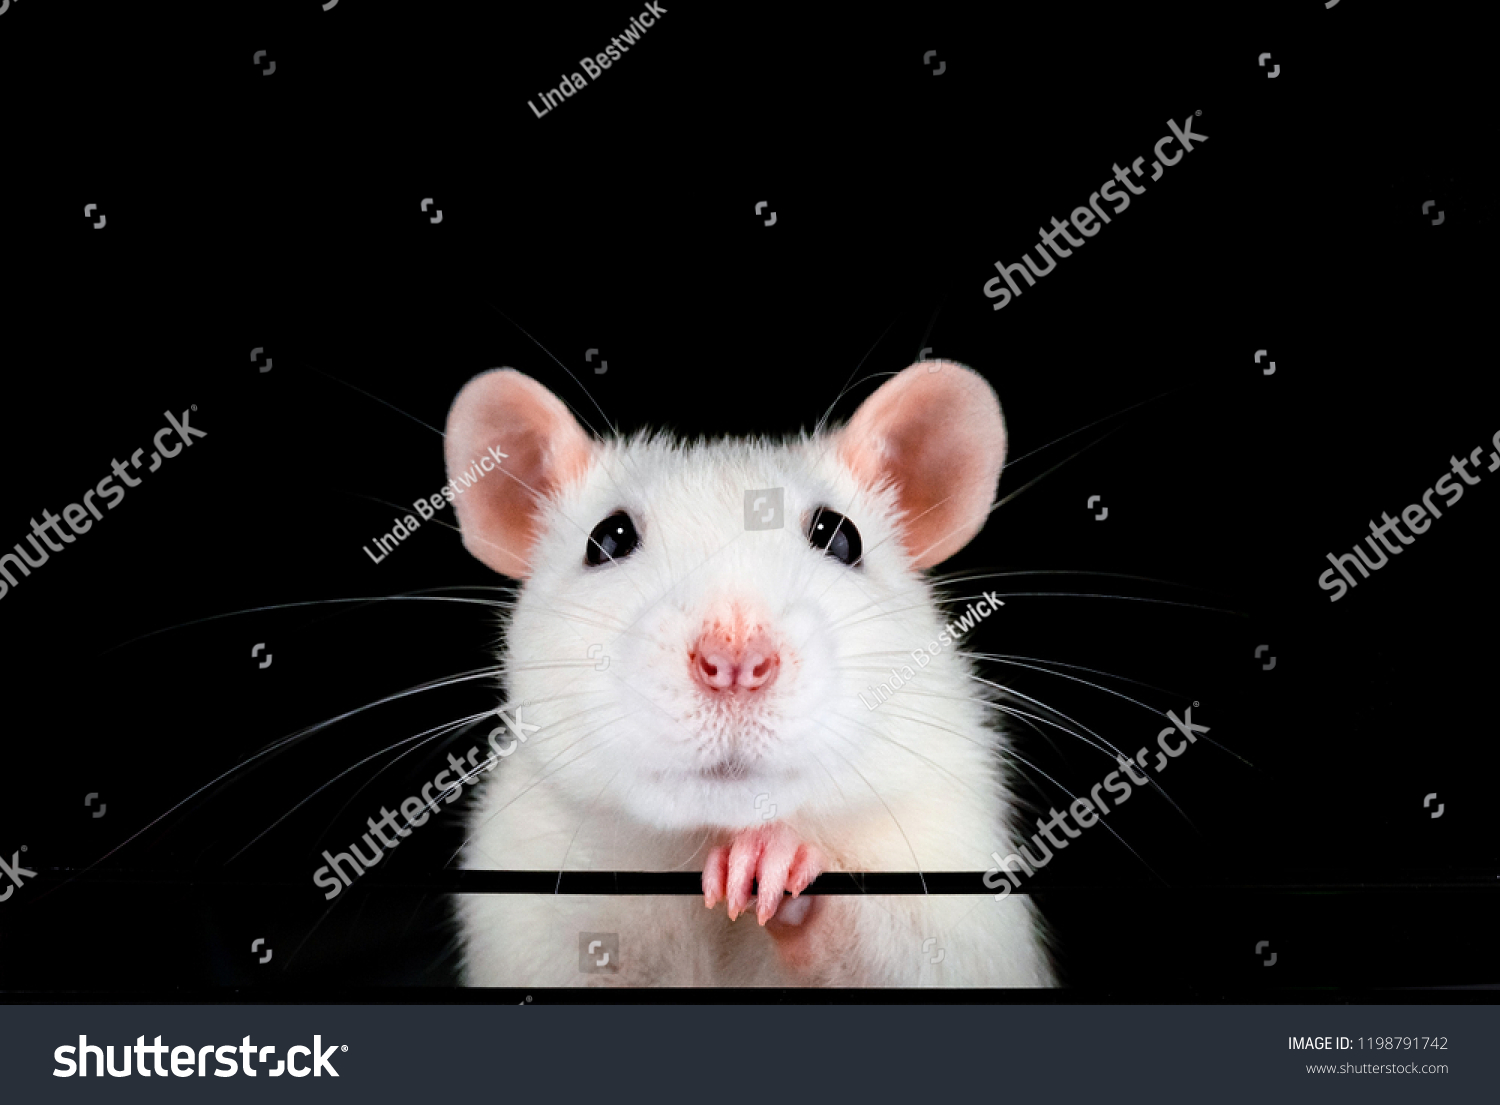 stock-photo-cute-white-pet-rat-portrait-